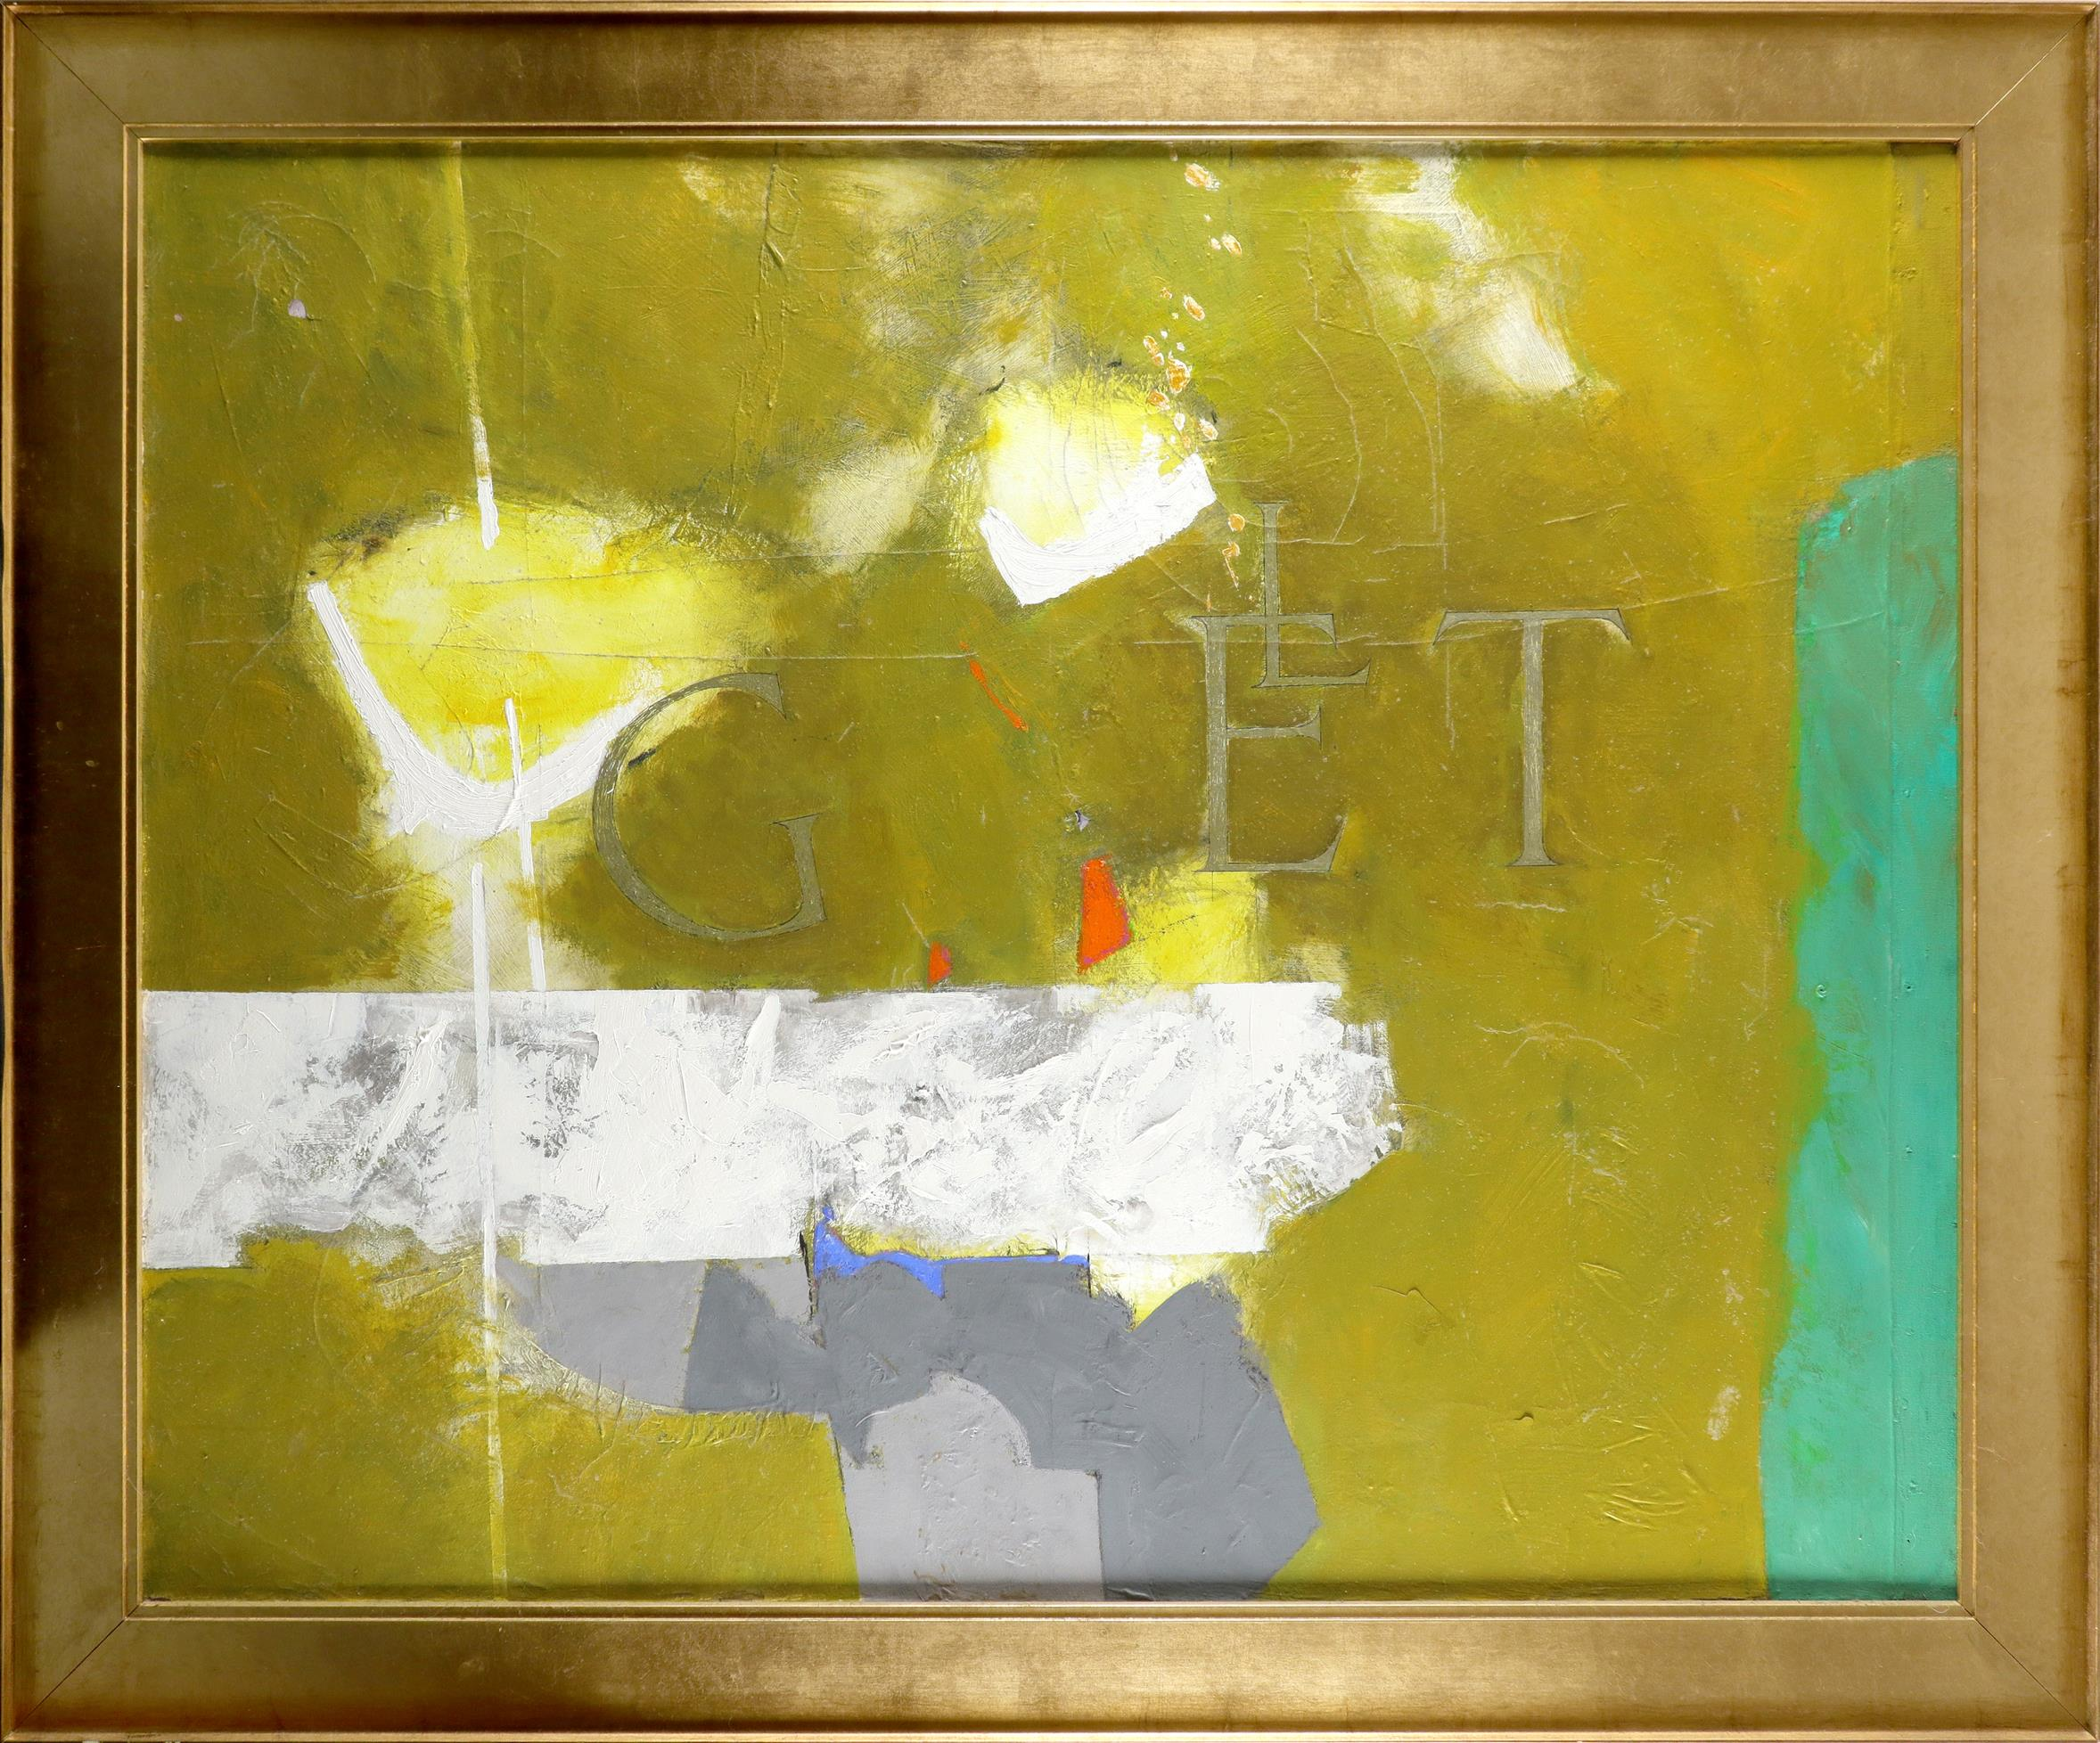 ‡Alastair Michie RWA, FRBS (Scottish 1921-2008) G.E.L.T. Signed Alastair Michie also titled and - Image 2 of 3